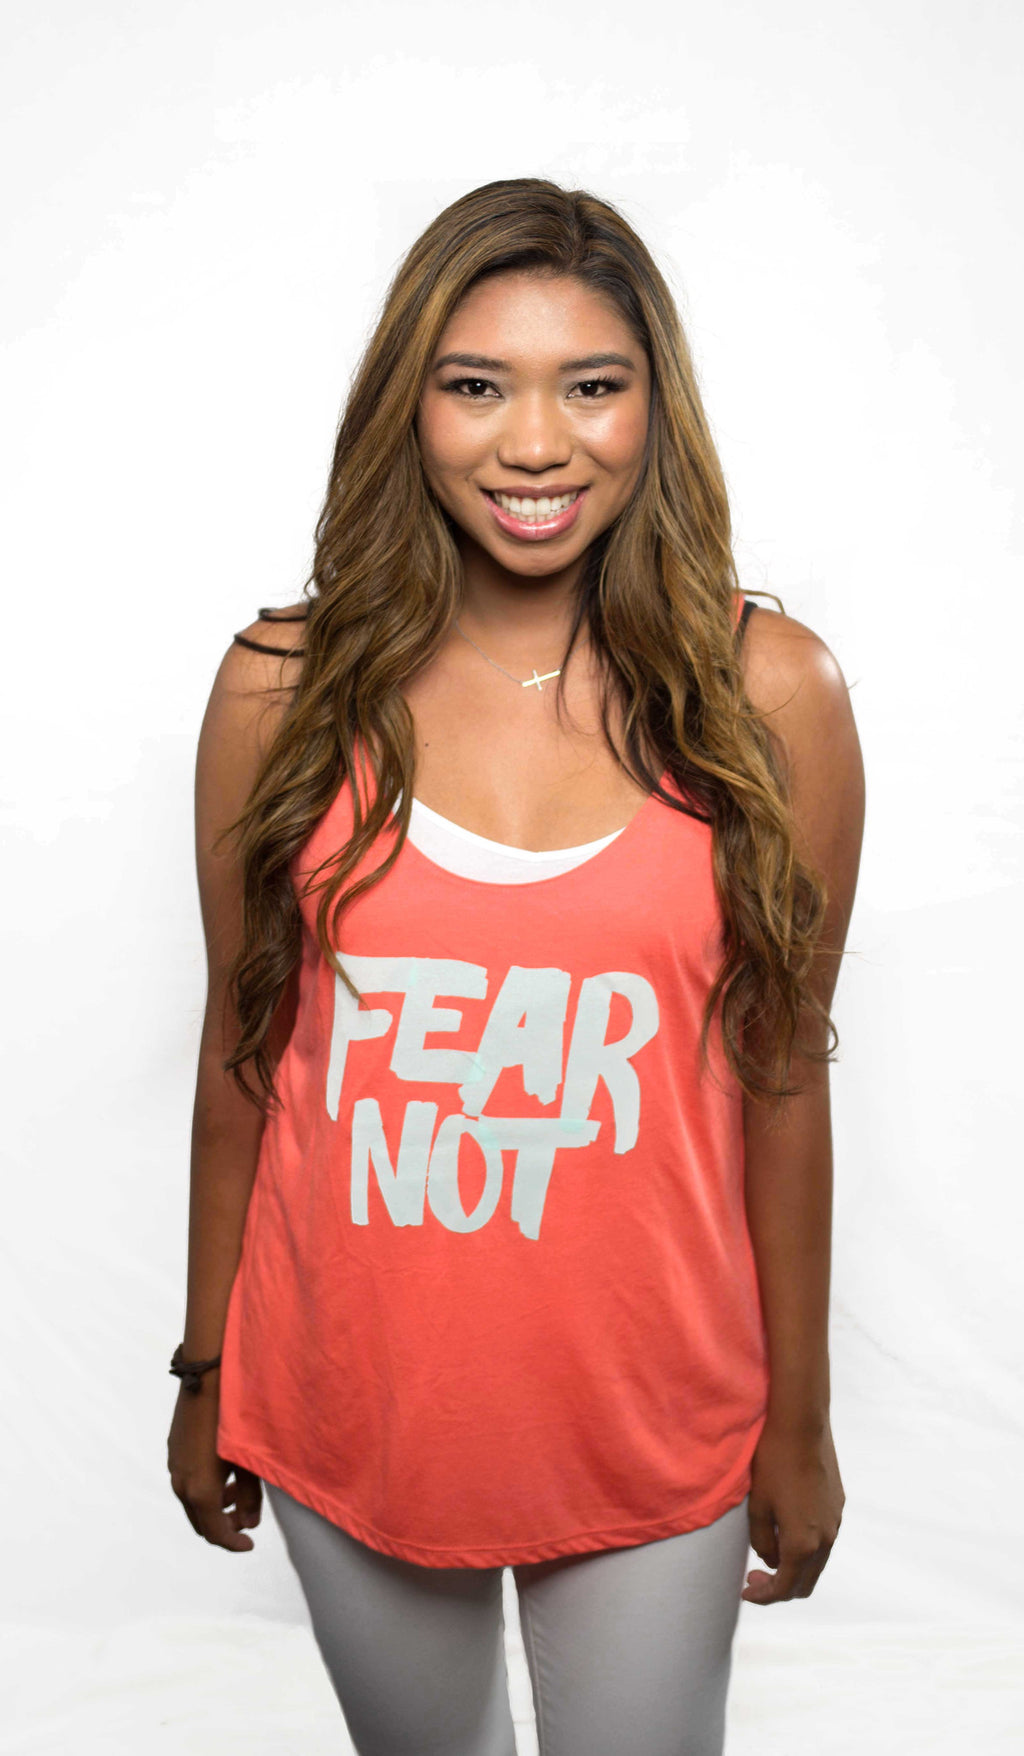 FEAR NOT CORAL WOMEN'S SLOUCHY TANK